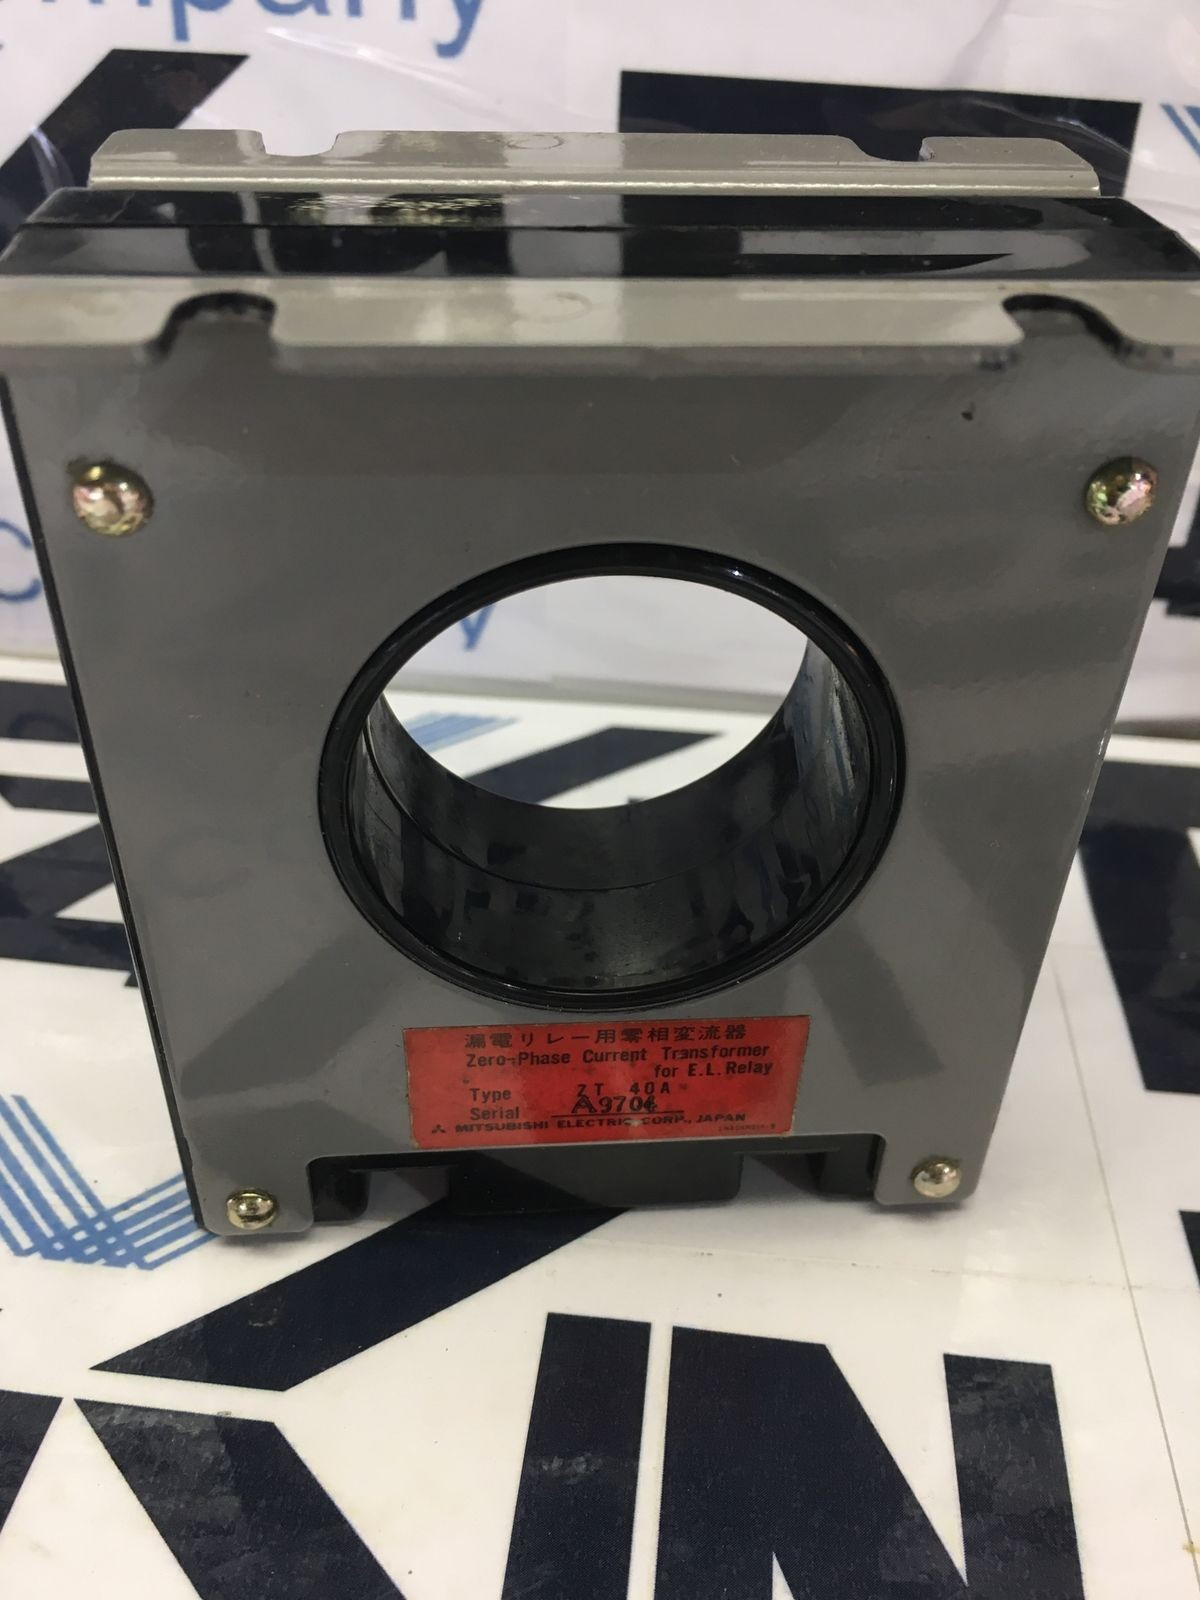 MITSUBISHI ELECTRIC ZERO-PHASE CURRENT TRANSFORMER  TYPE ZT 40A USED